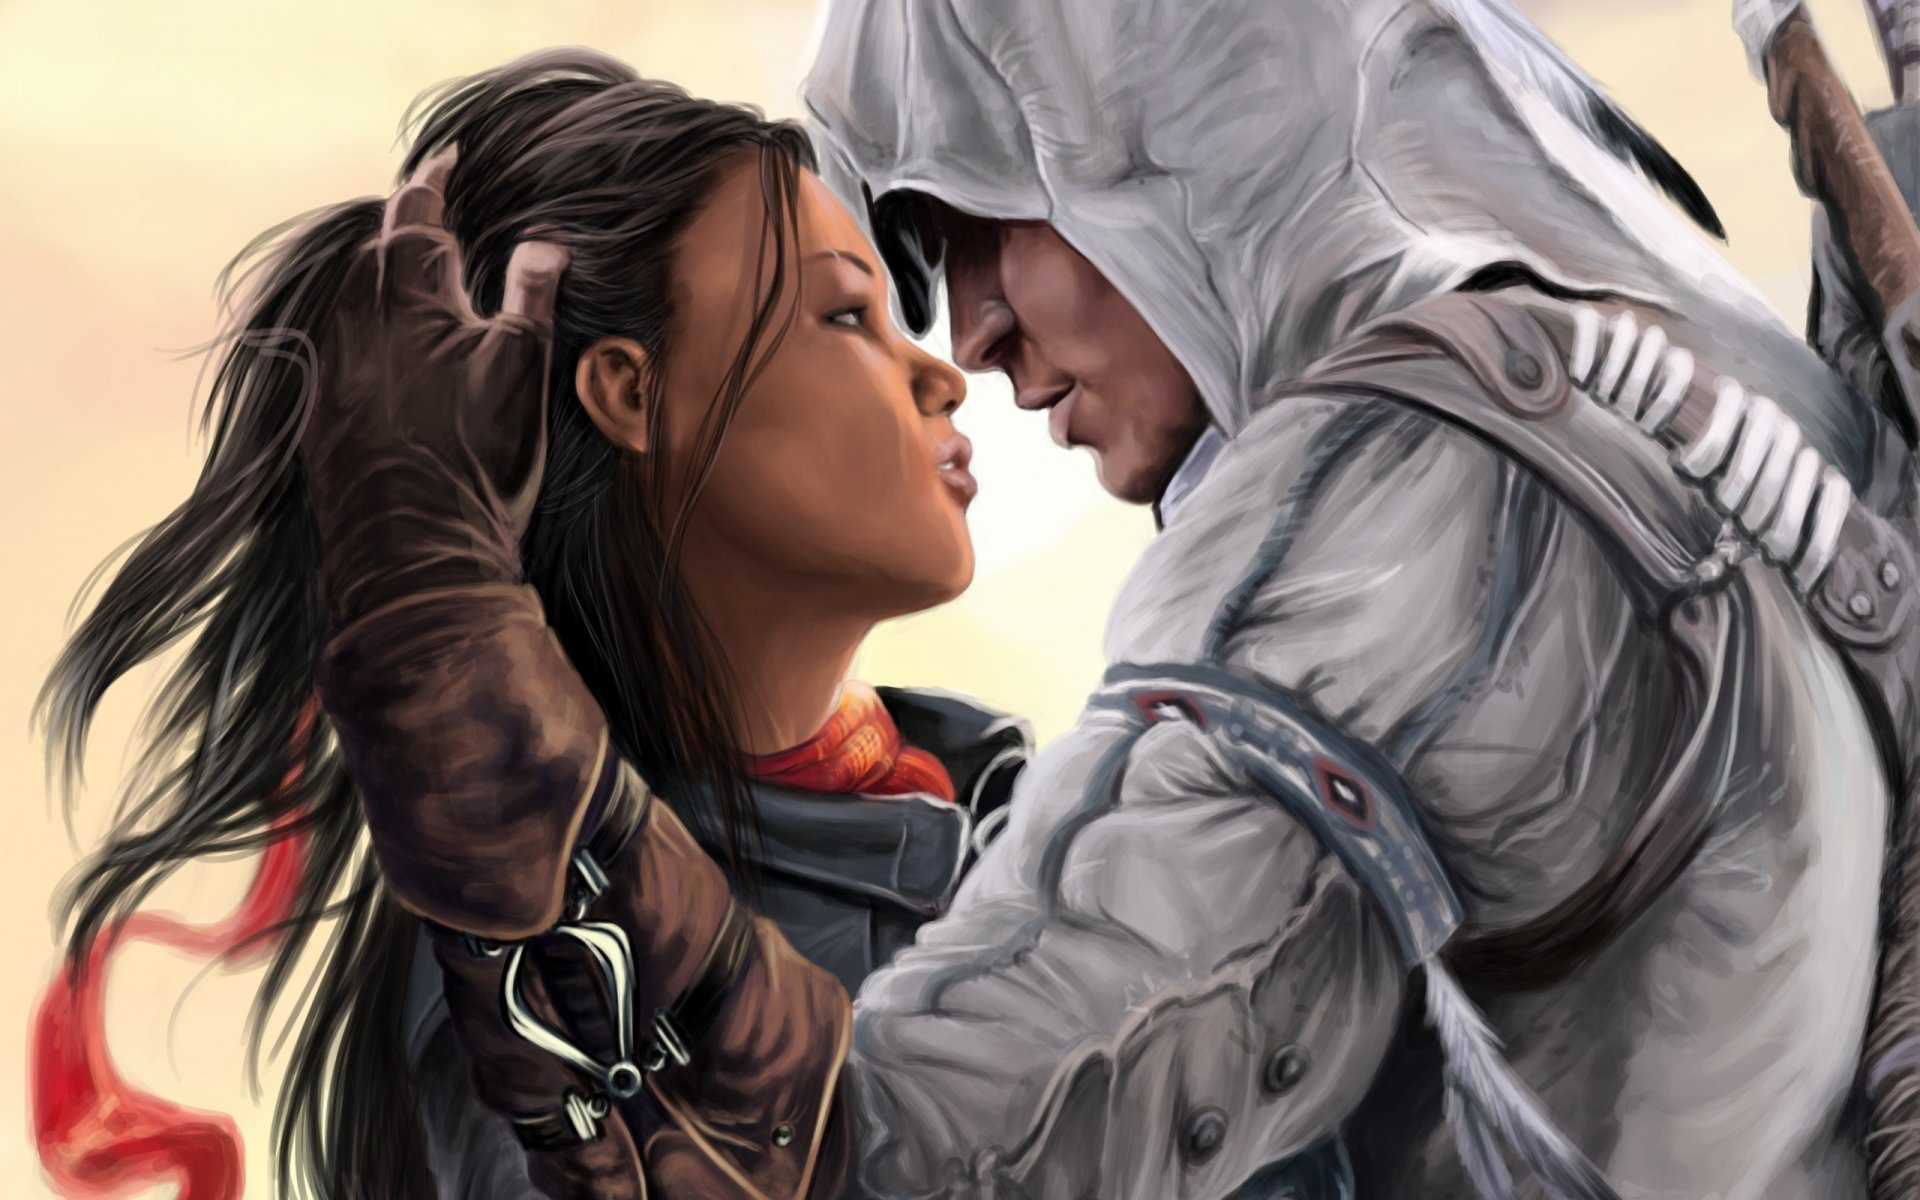 Video Game - Assassin's Creed  Connor (Assassin's Creed) Aveline de Grandpré Girl Couple Love Wallpaper